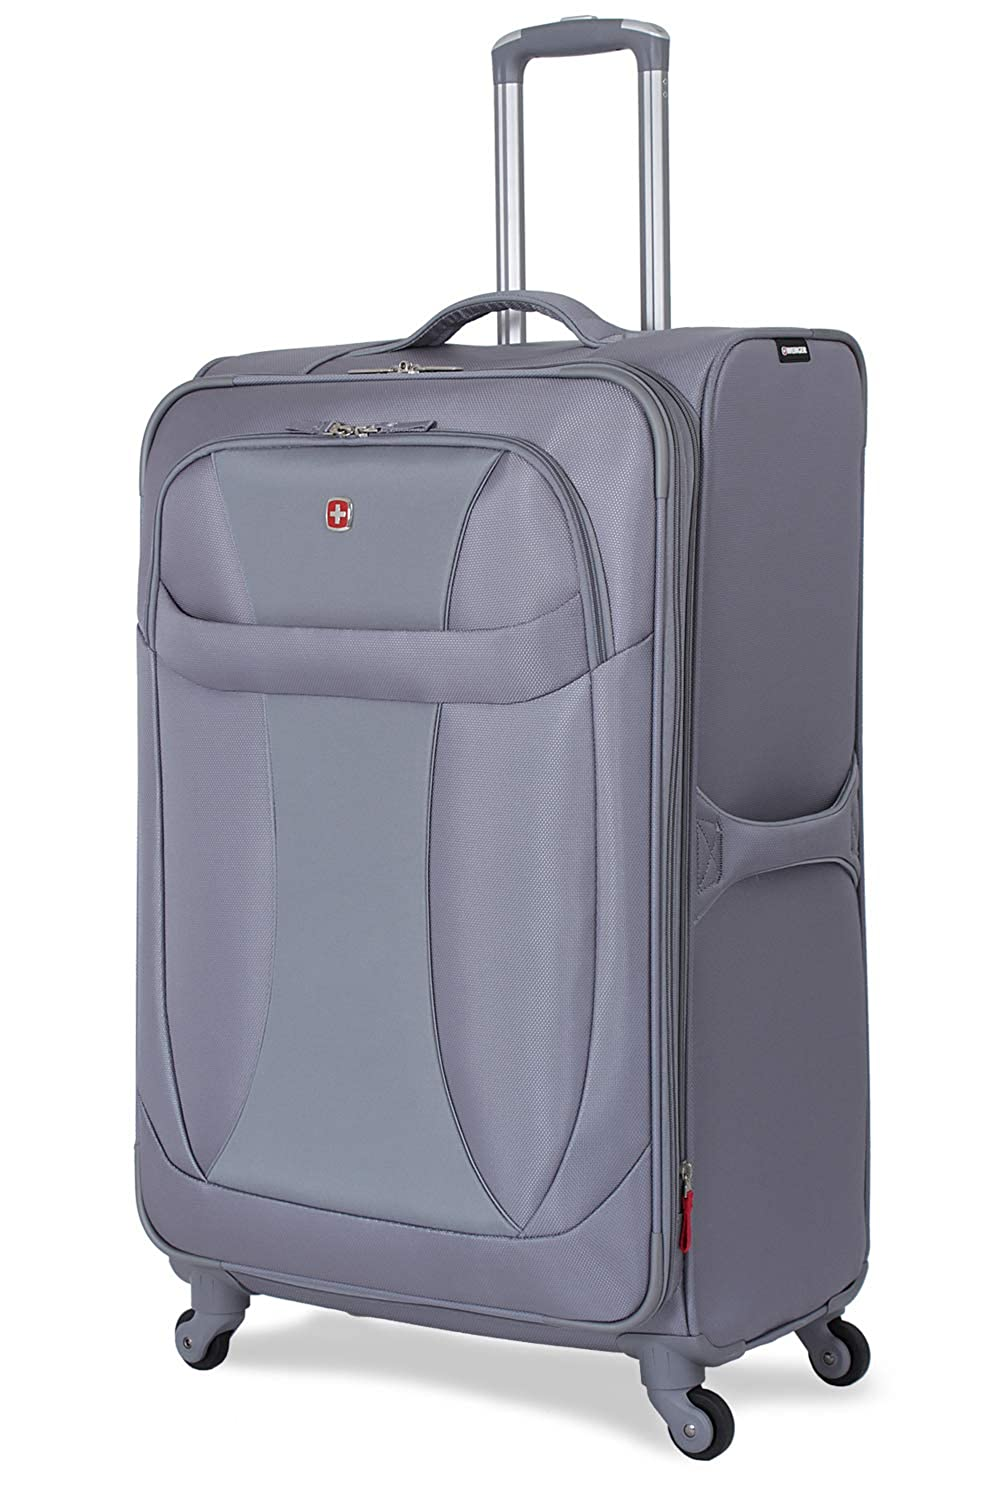 SWISSGEAR 7208 Neolite Suitcase 20-Inch Expandable Carry-on Gray